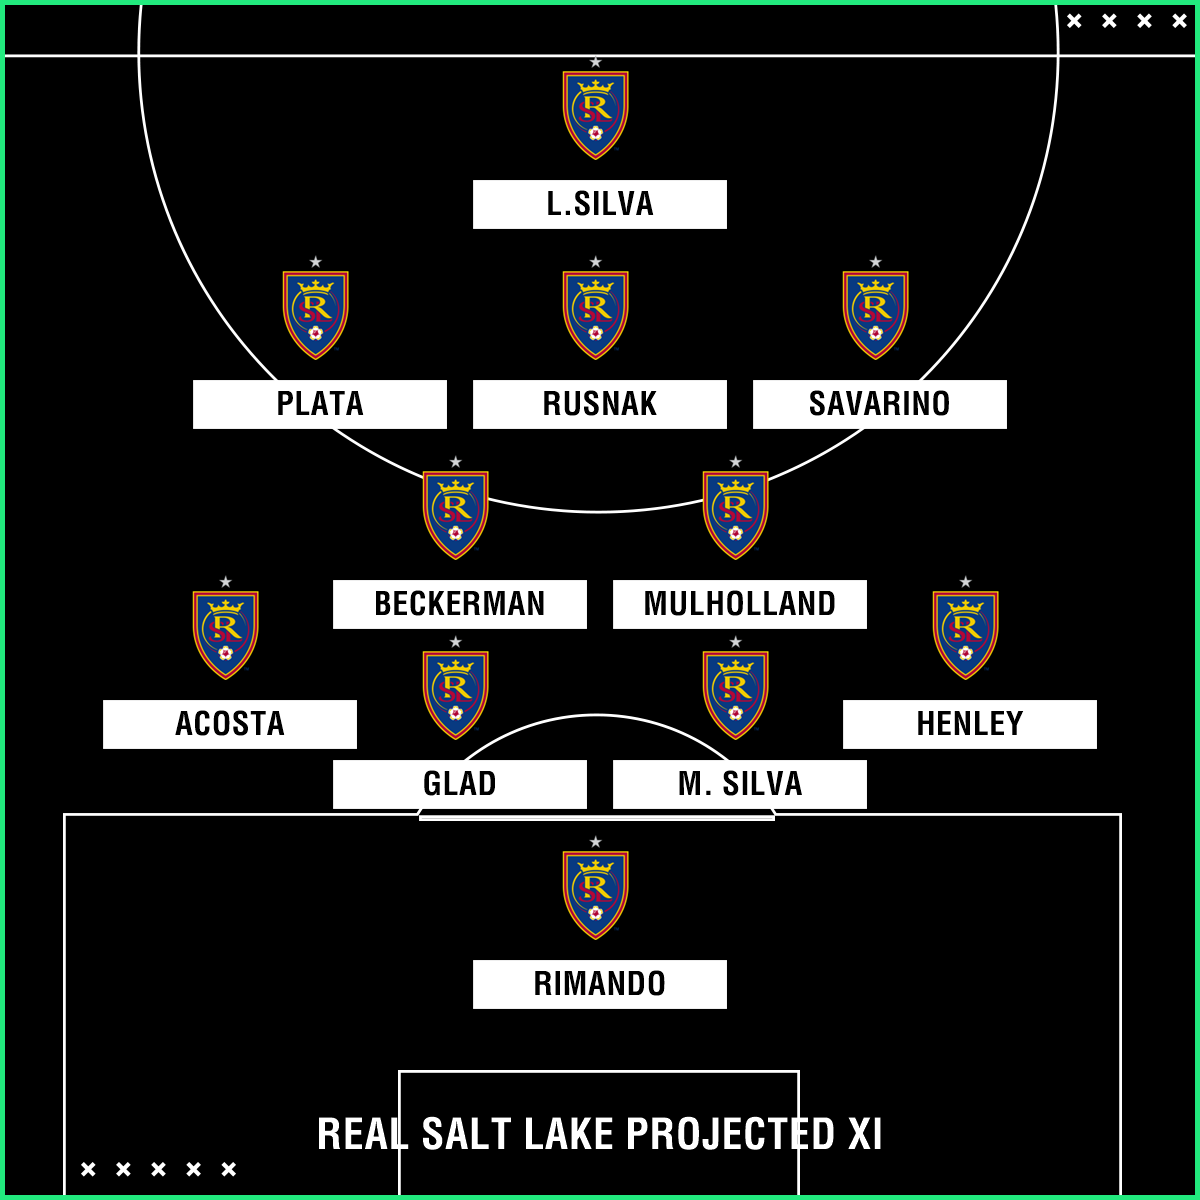 Real Salt Lake projected XI